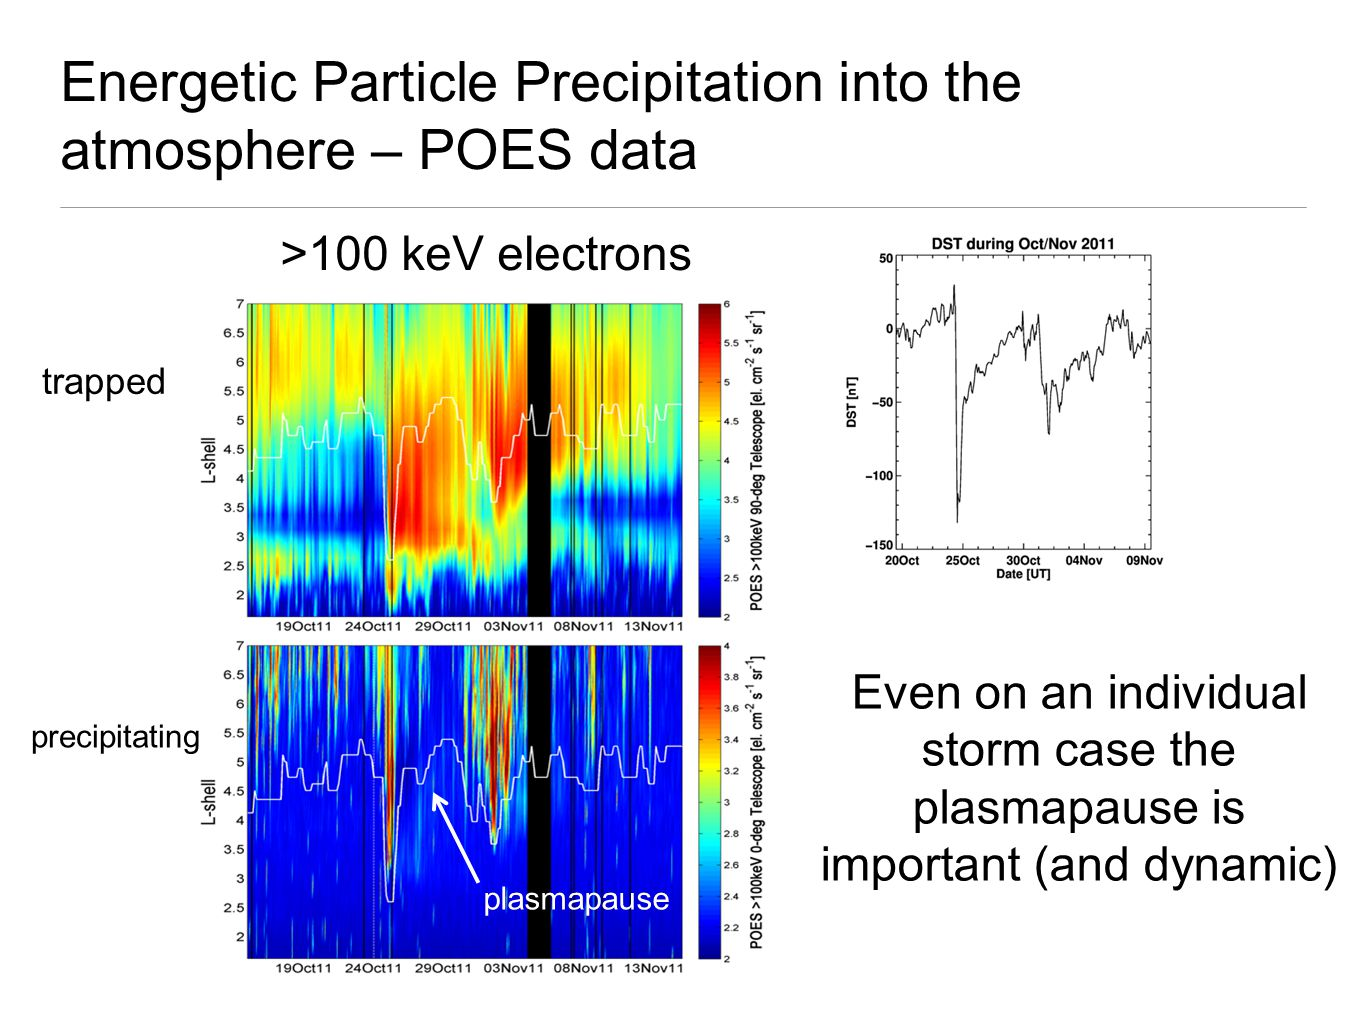 Energetic Particle Precipitation into the atmosphere – POES data trapped >100 keV electrons precipitating Even on an individual storm case the plasmapause is important (and dynamic) plasmapause